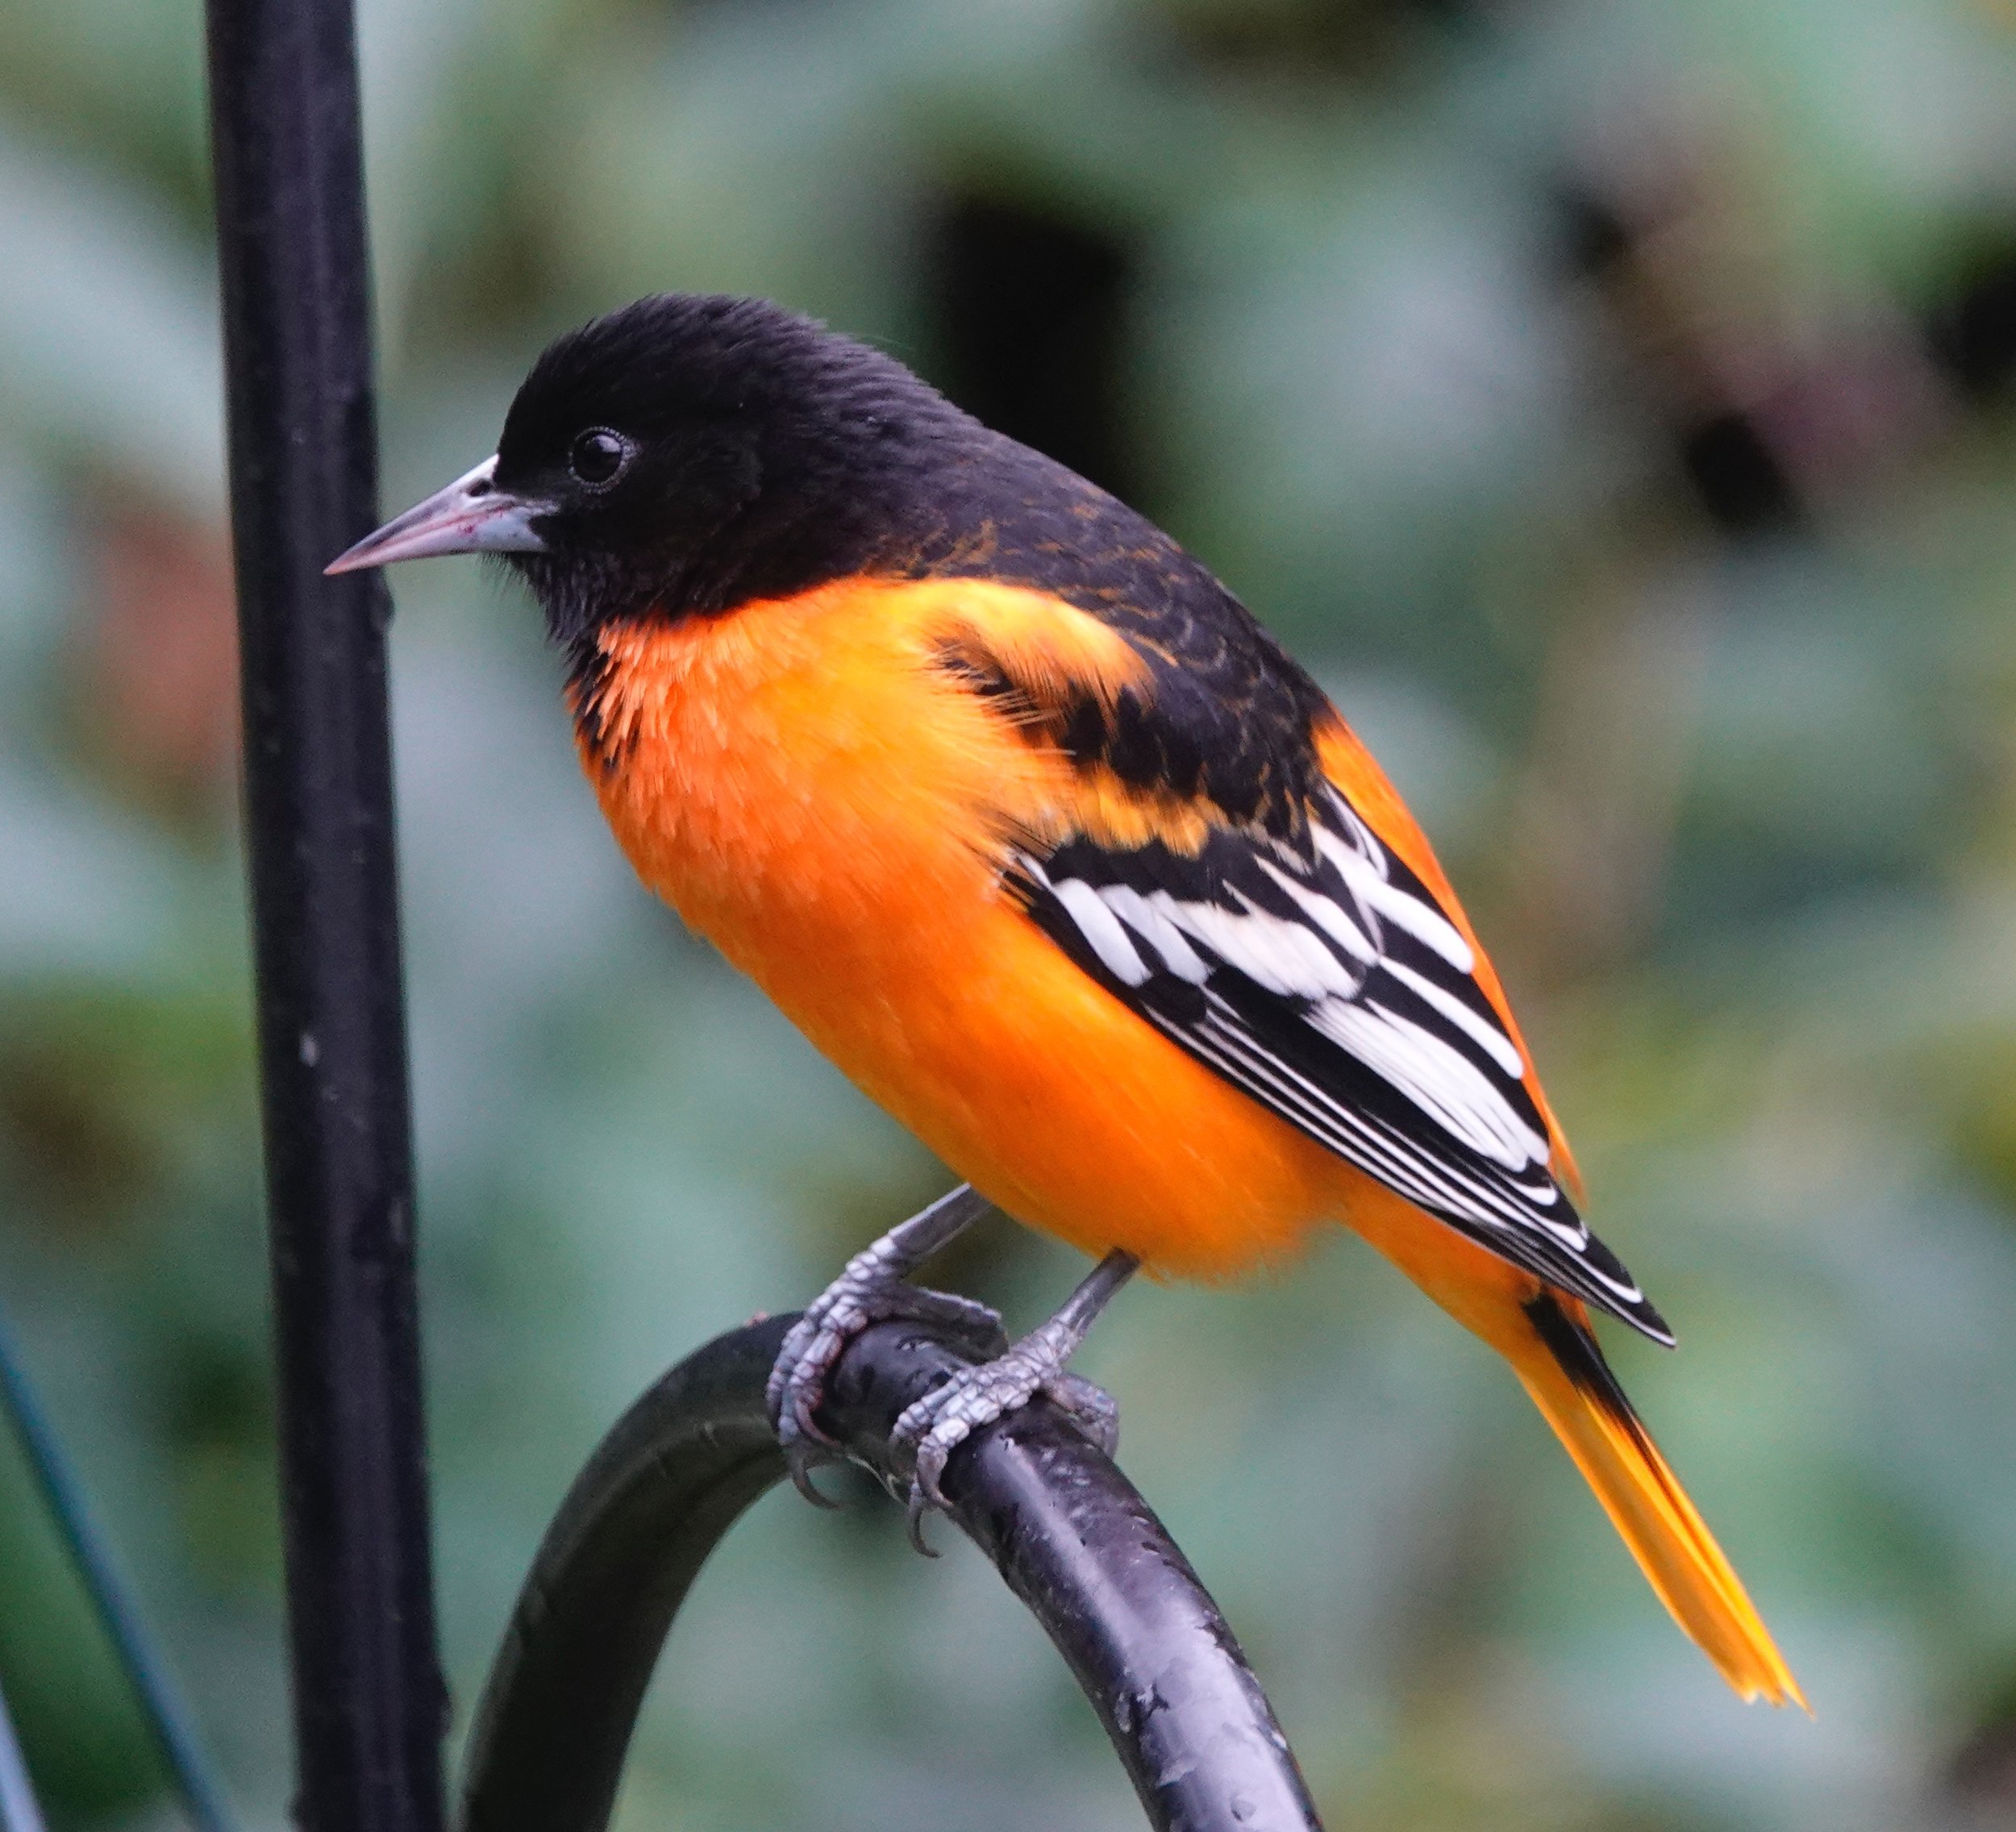 The Baltimore oriole was named because of its similarity to the colors on the heraldic crest of Lord Baltimore.